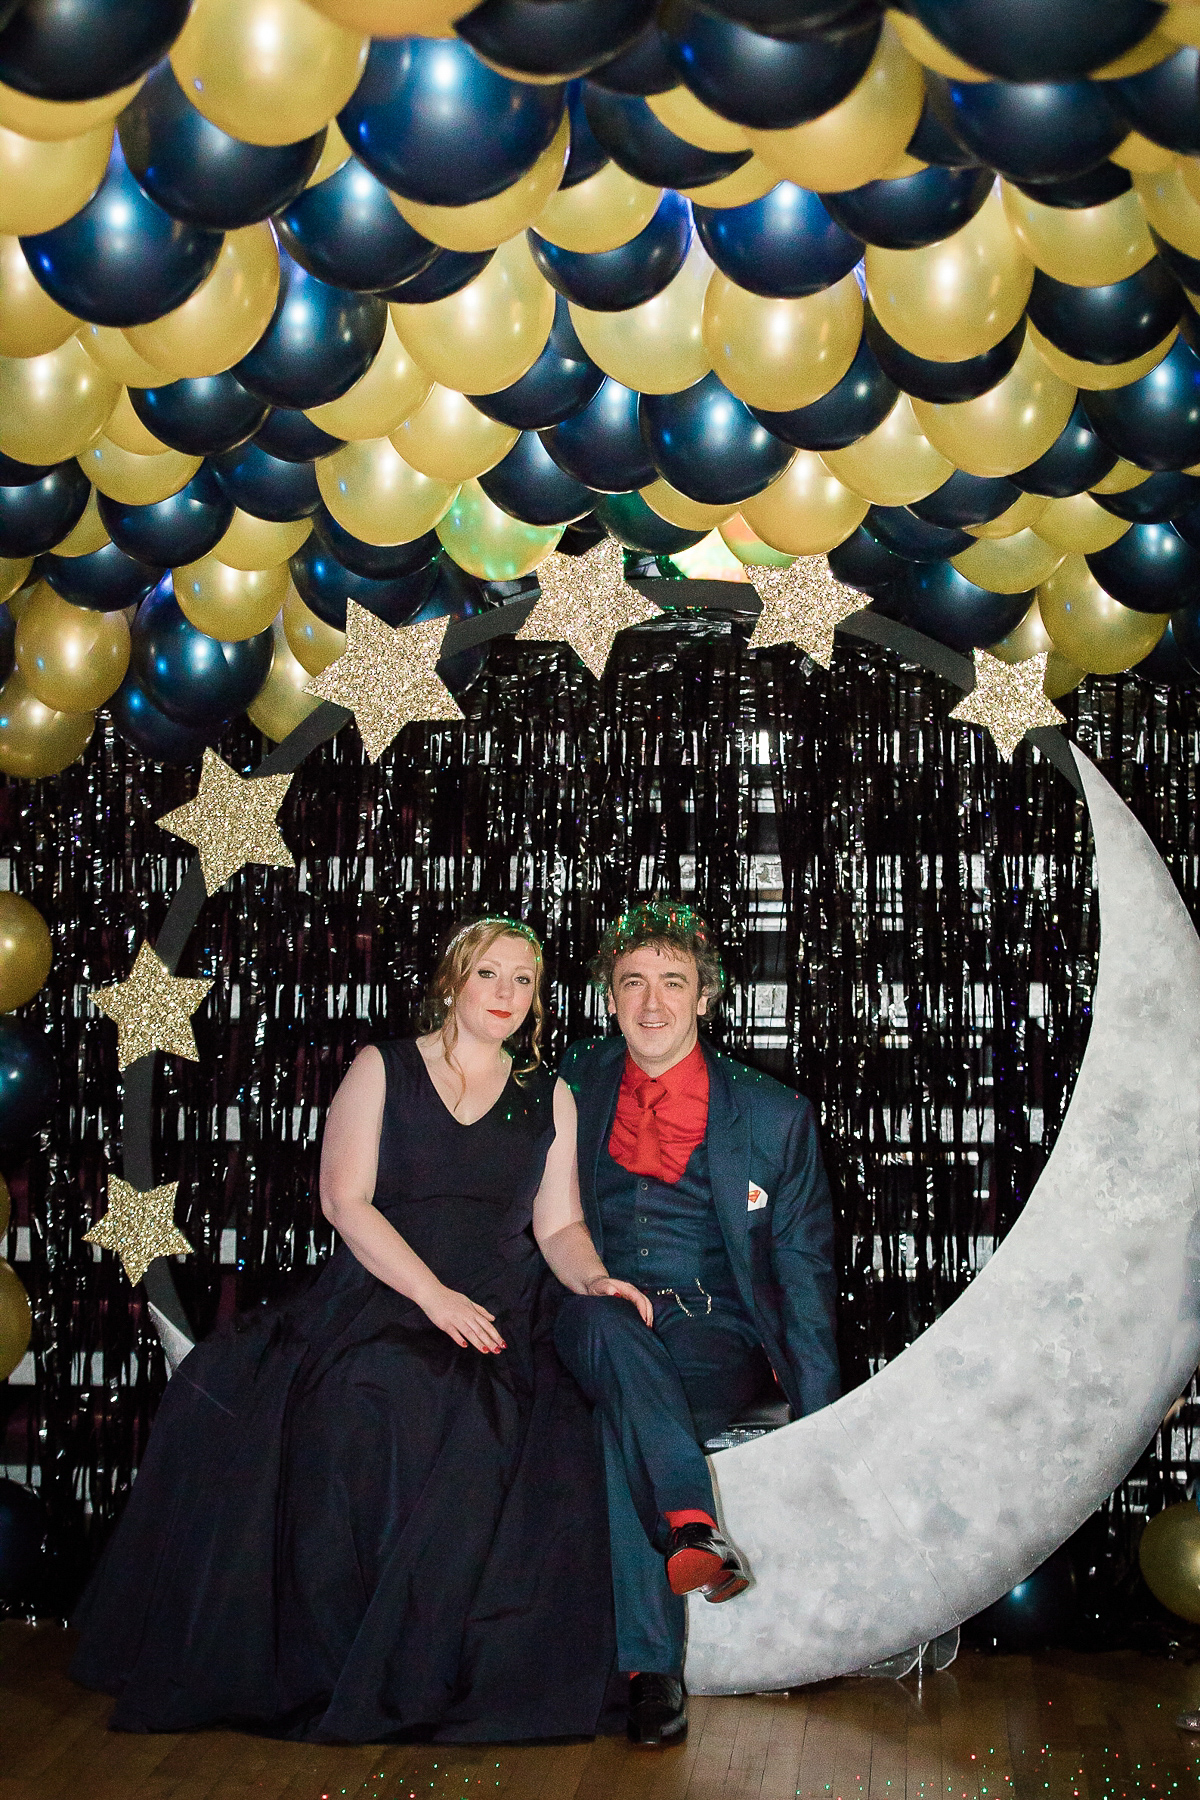 Two Dresses and Charlotte Olympia Shoes for a Star-Filled Theatre Wedding (Weddings )